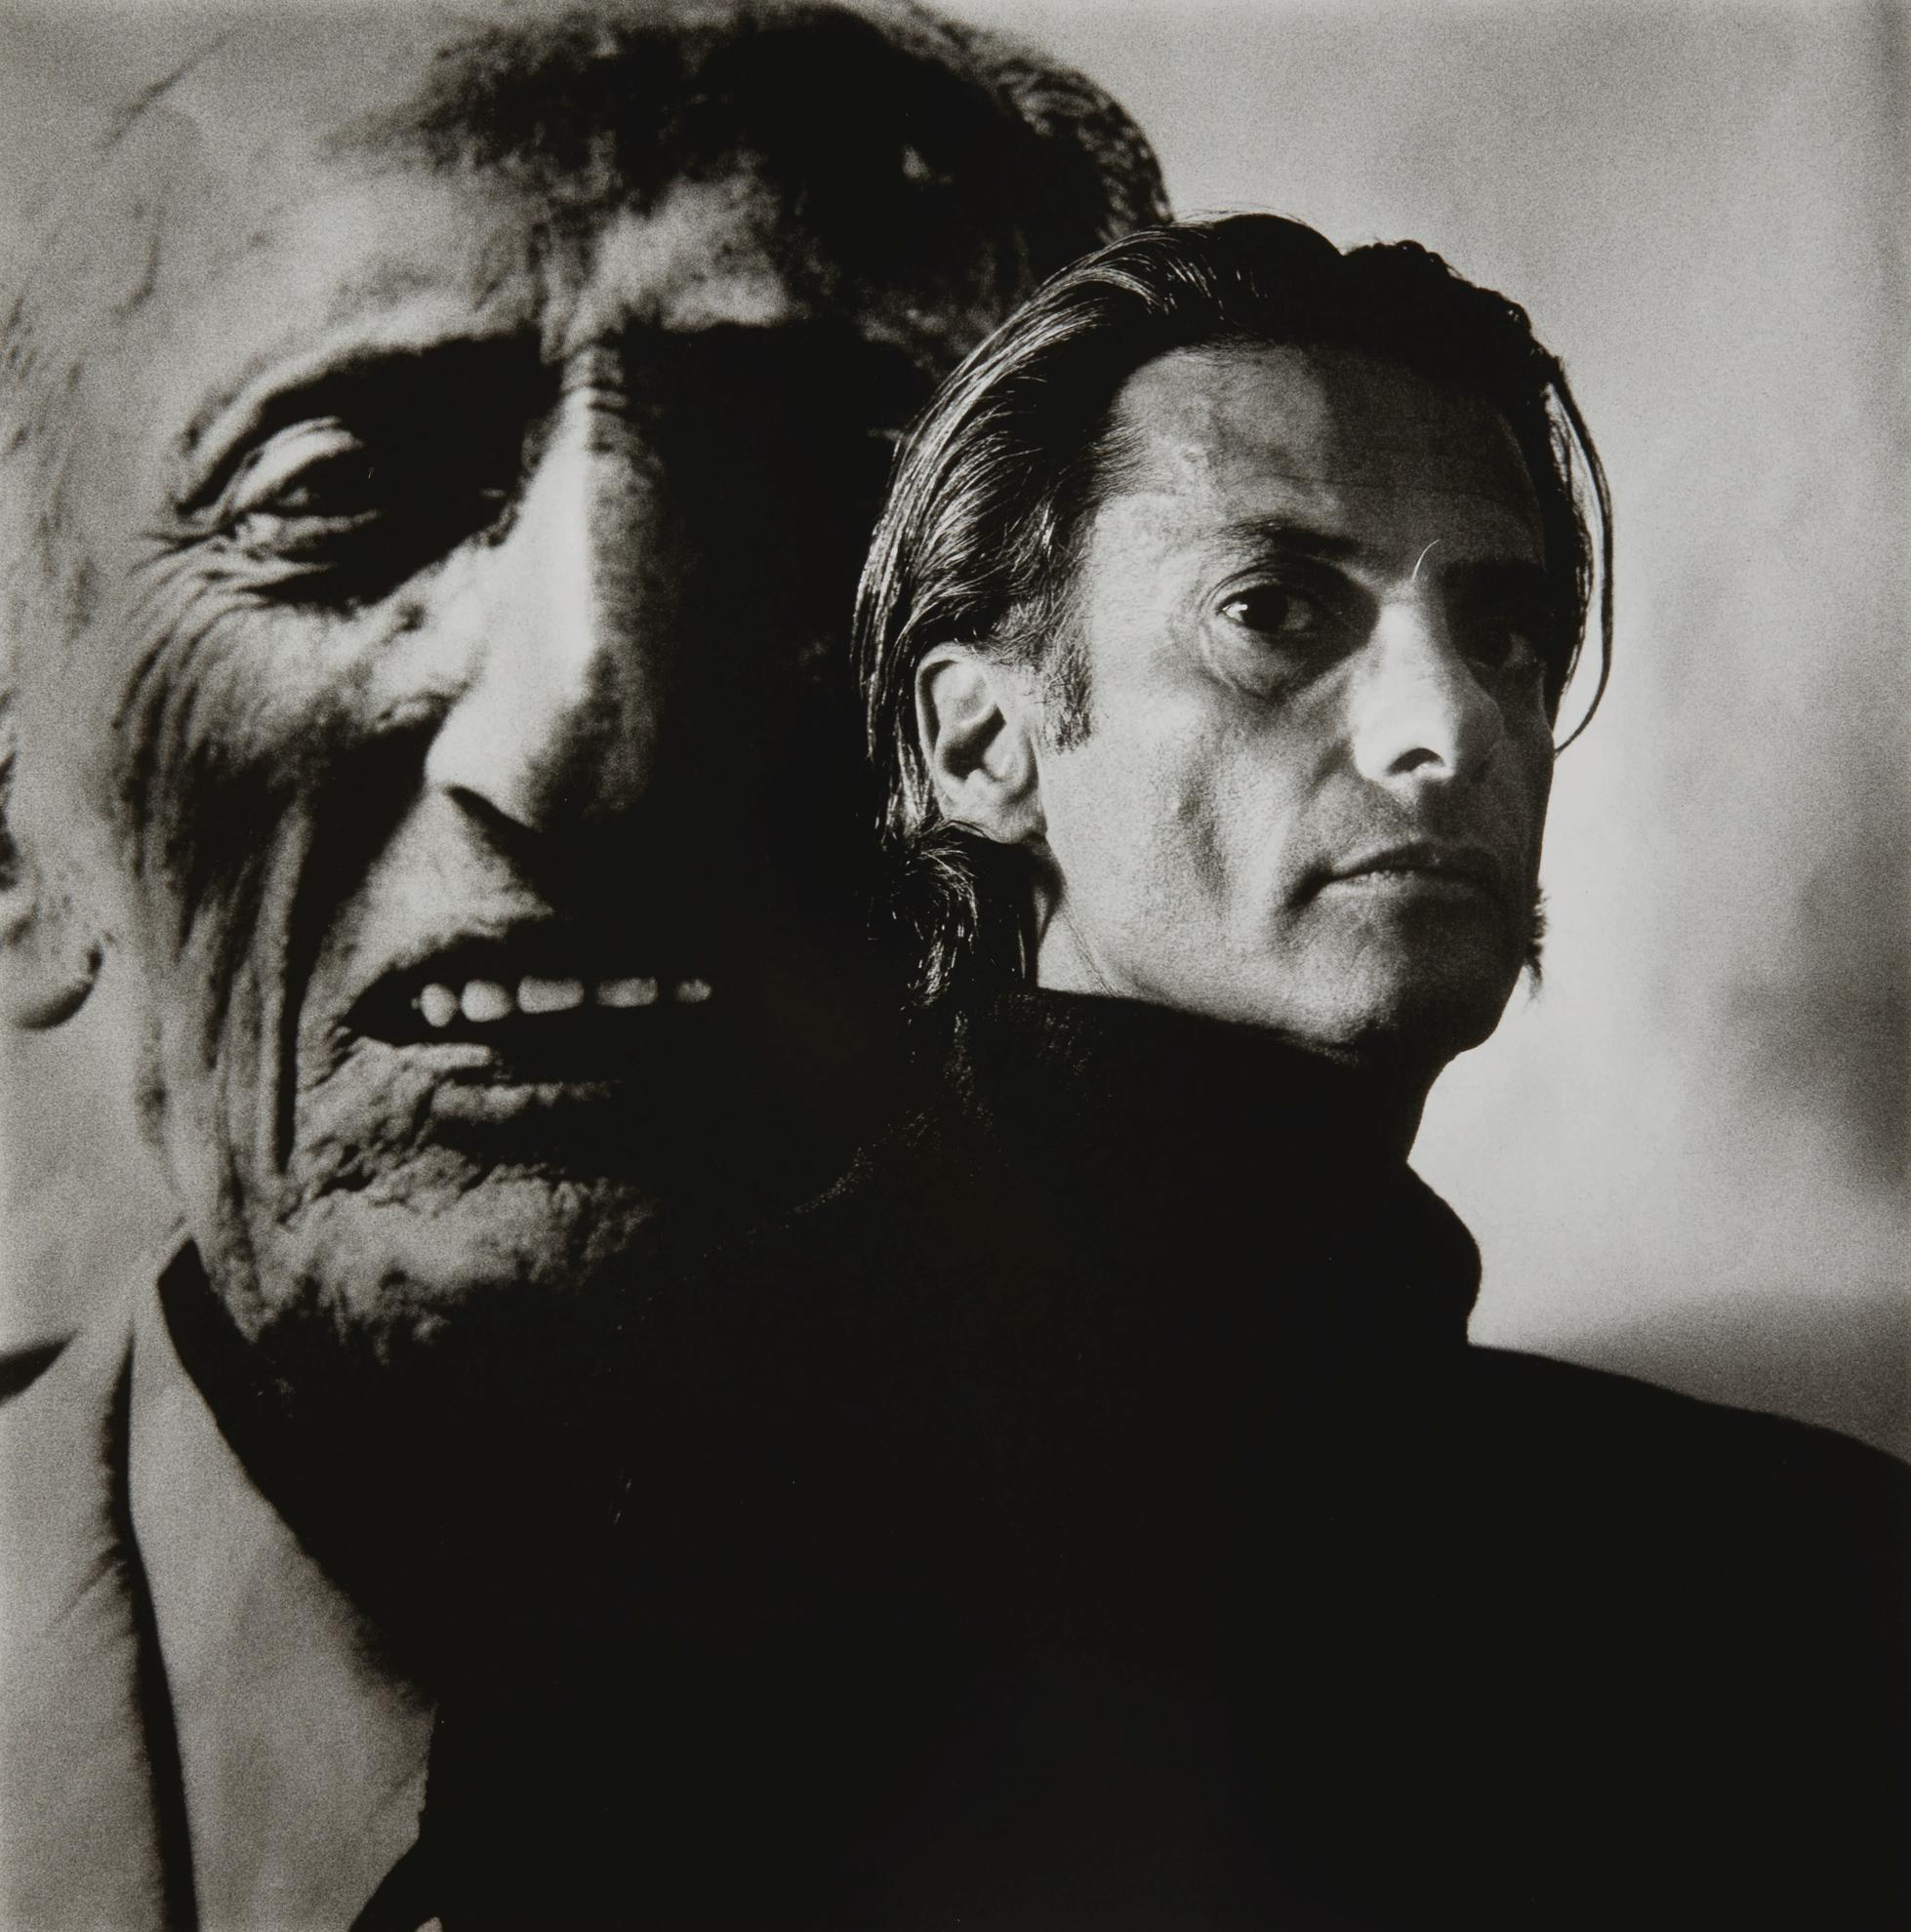 Gideon Lewin - Untitled (Richard Avedon)-1975